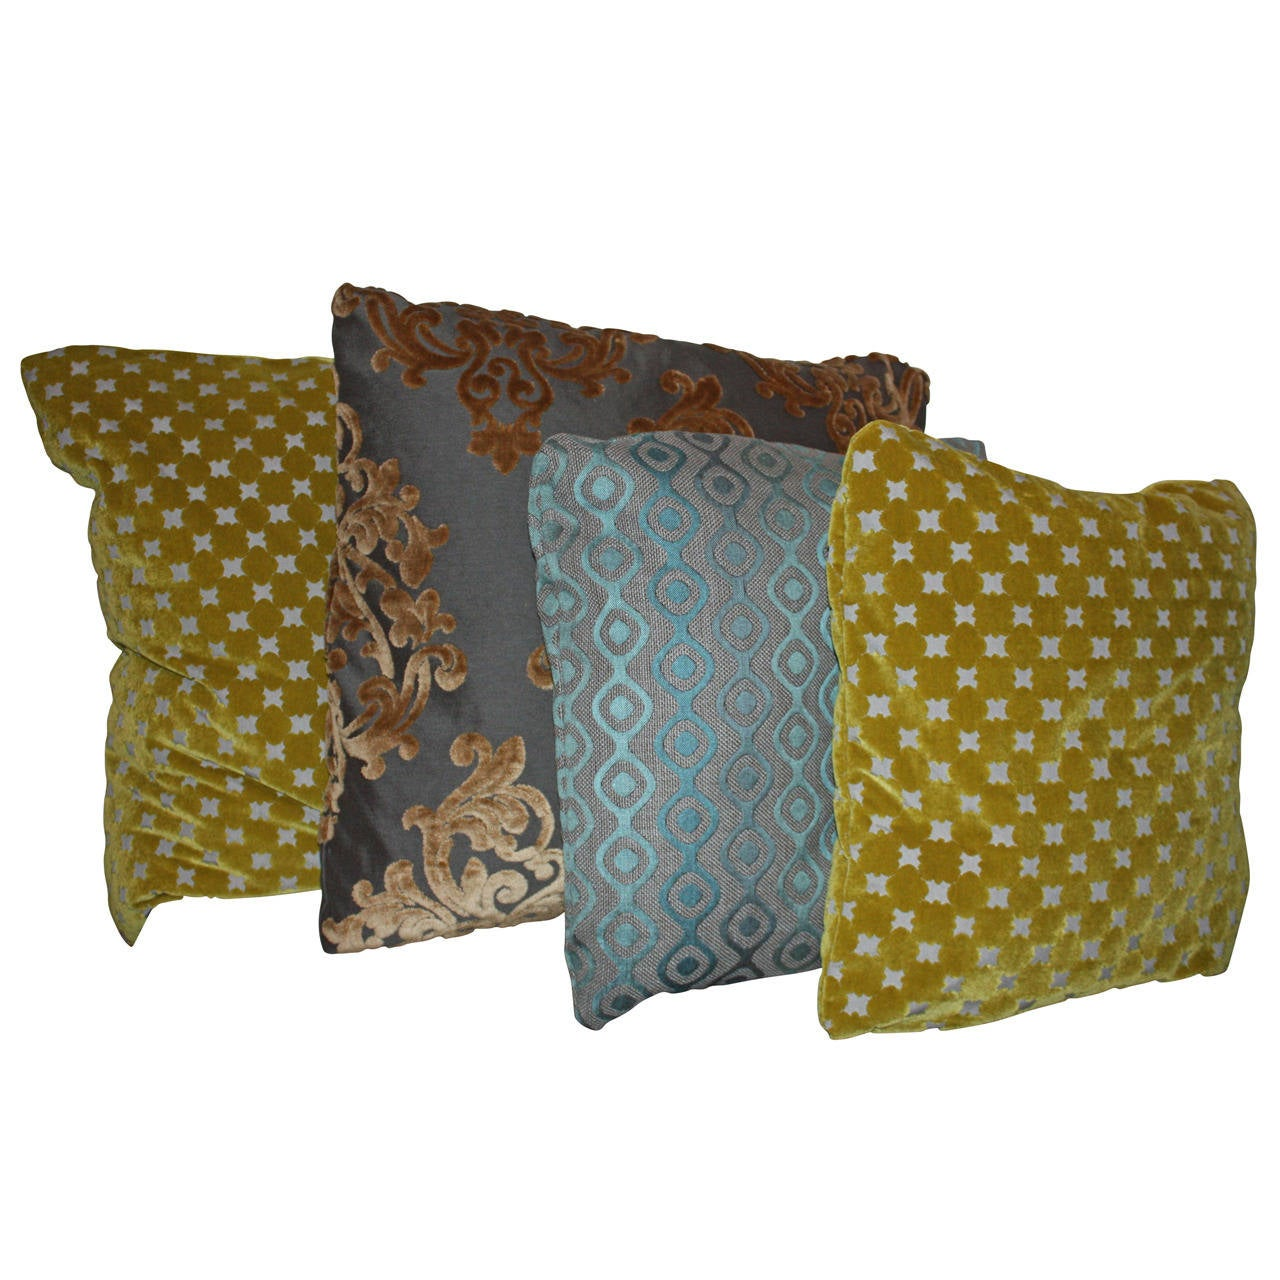 Throw Pillows Vintage Fabric : New Pillows in French Vintage Pattern Fabric For Sale at 1stdibs